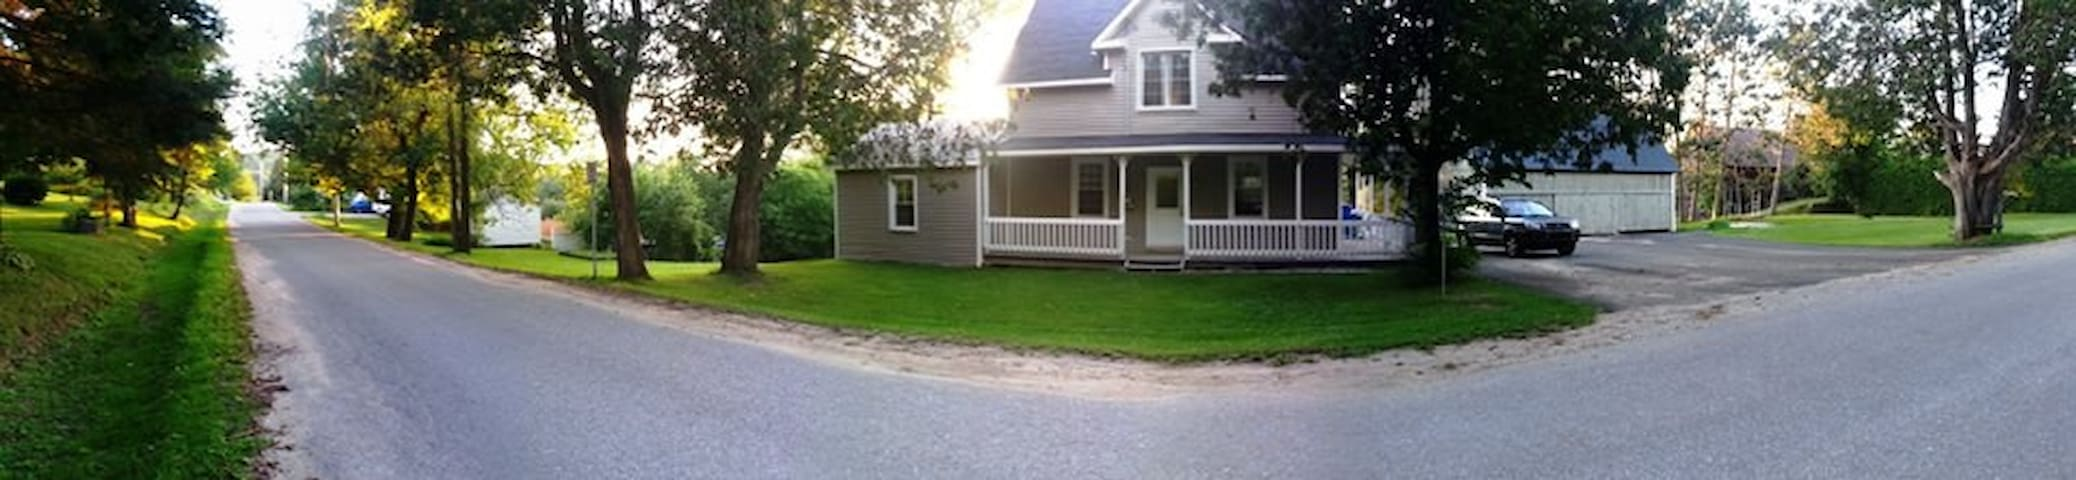 2 minutes from the Gatineau Park Lac Philippe area - Sainte-Cécile-de-Masham - Bed & Breakfast